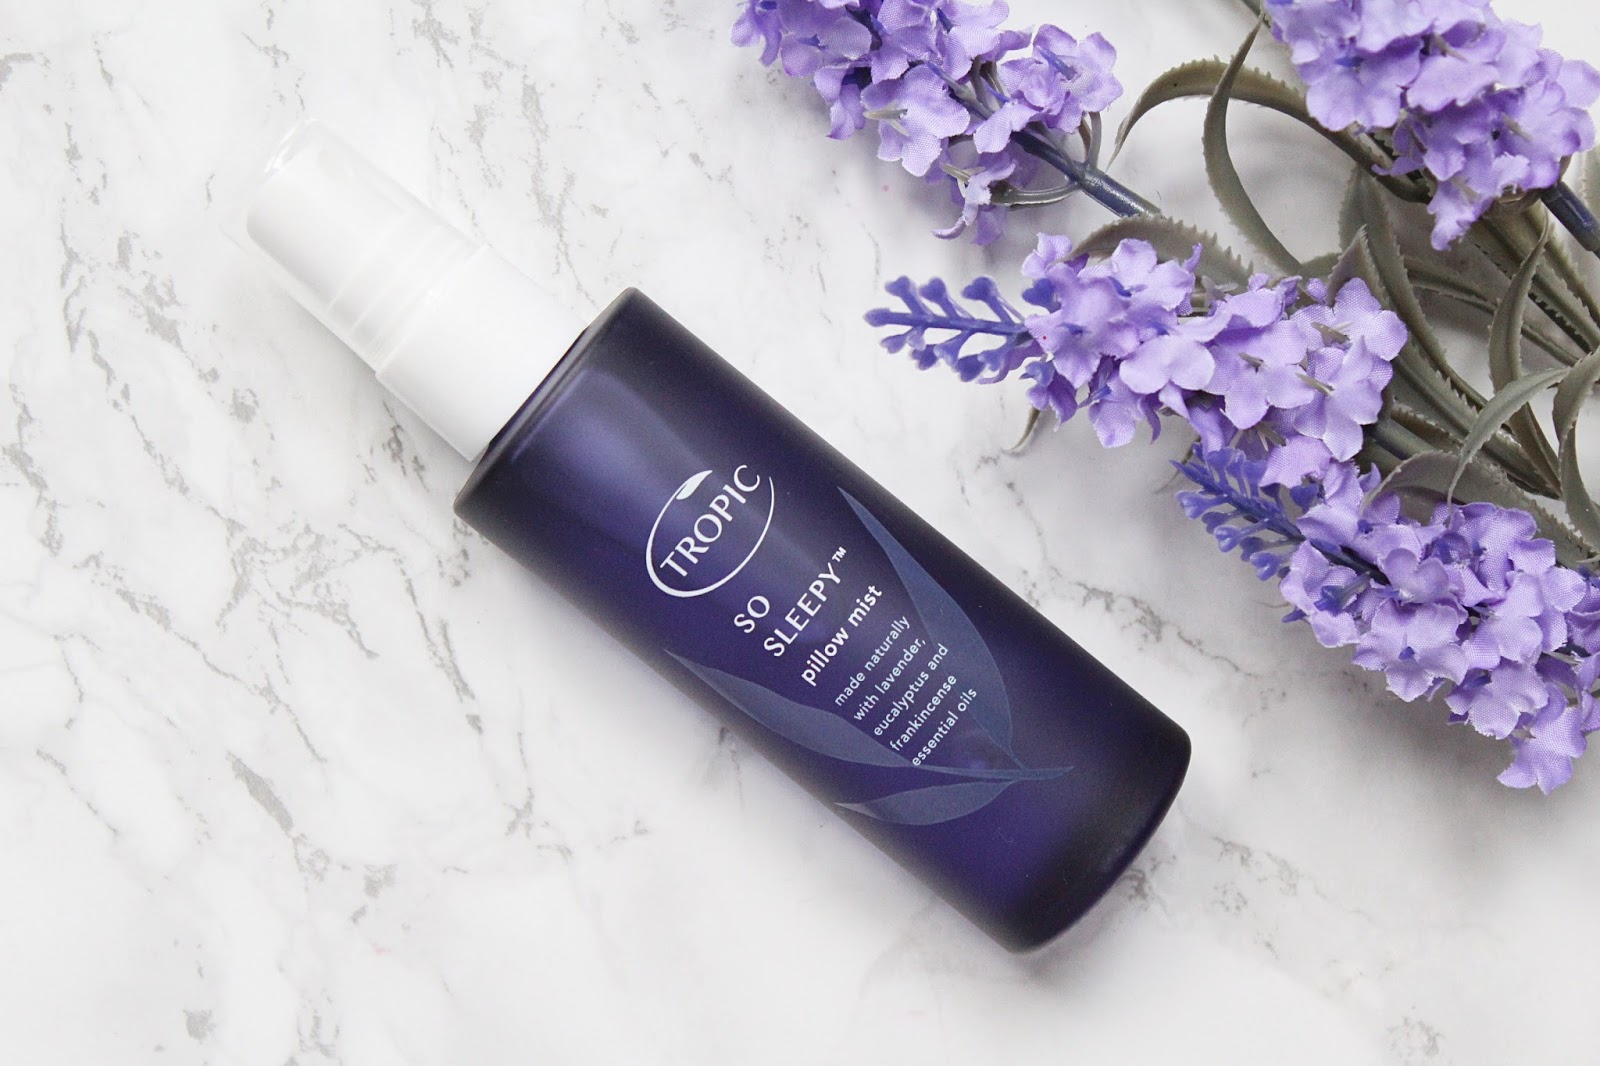 Tropic So Sleepy Pillow Mist Review